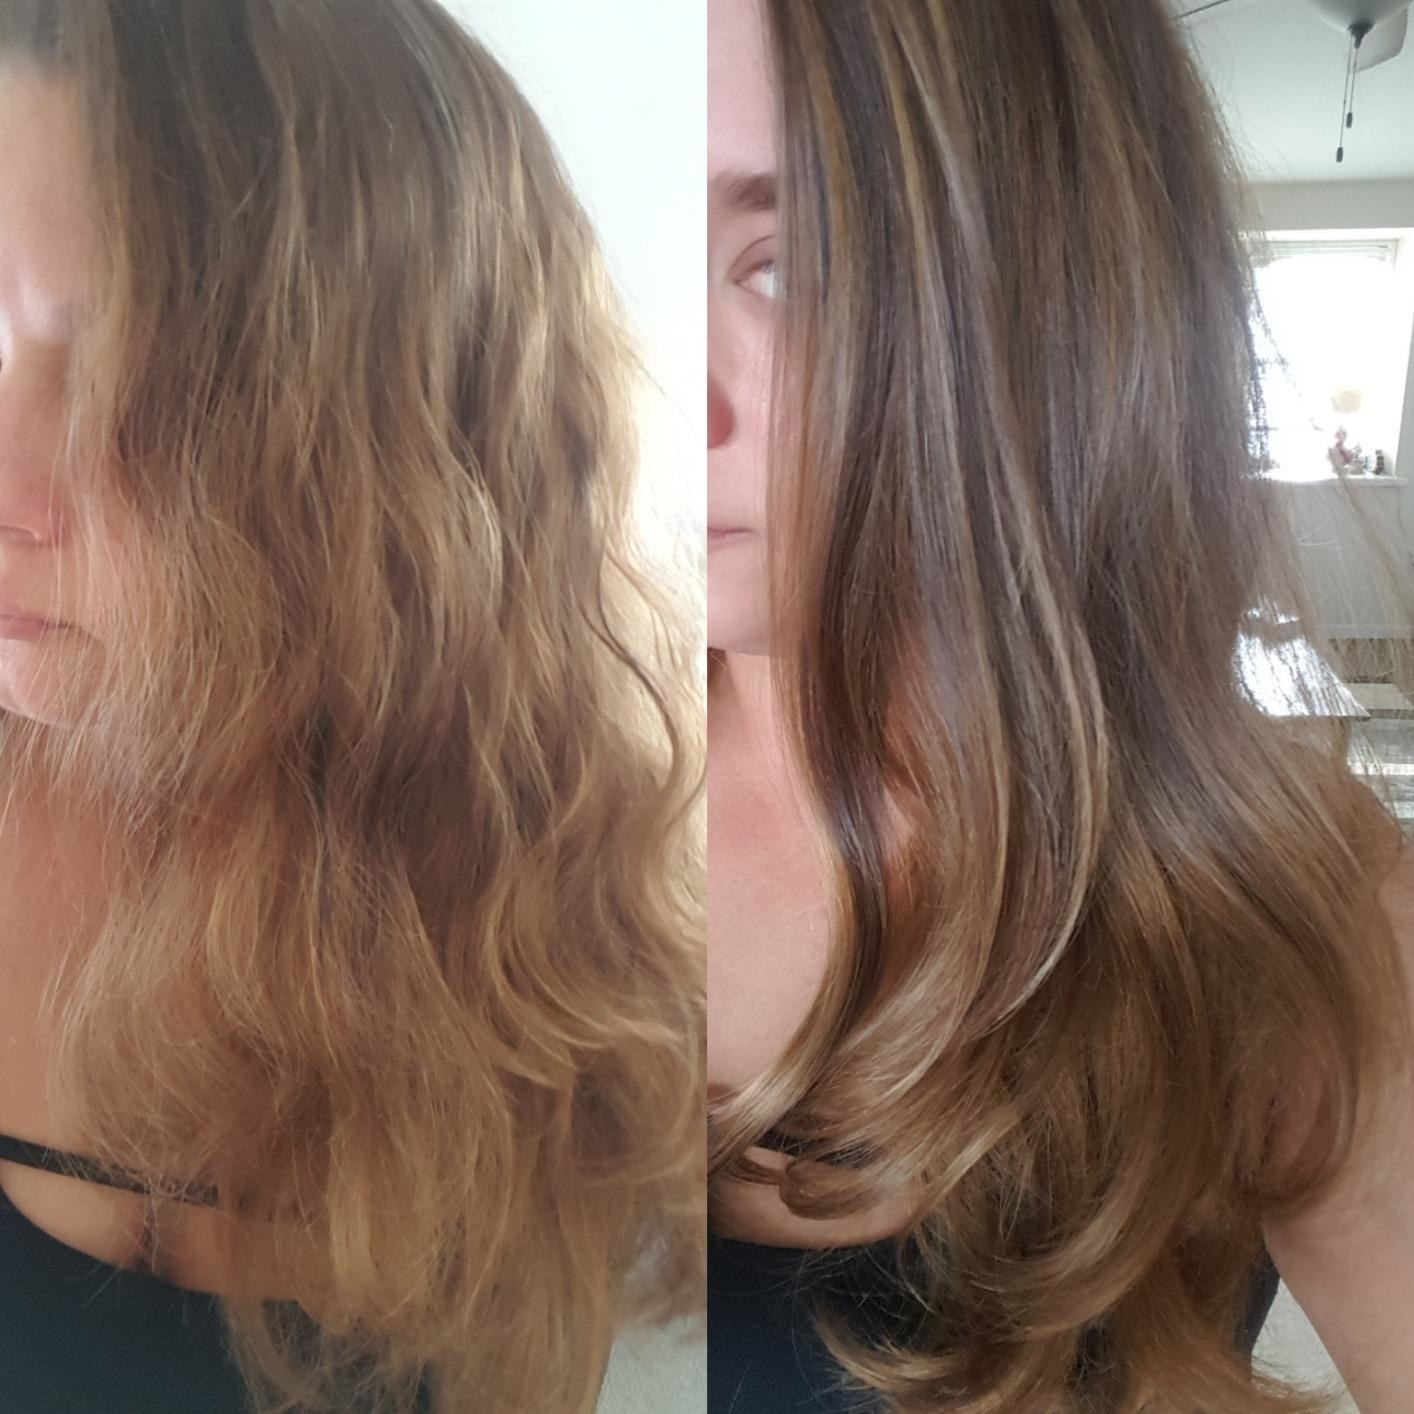 Reviewer photo of their hair before and after using the brush. Before the hair is somewhat messy and frizzy and after the hair is smooth and styled up